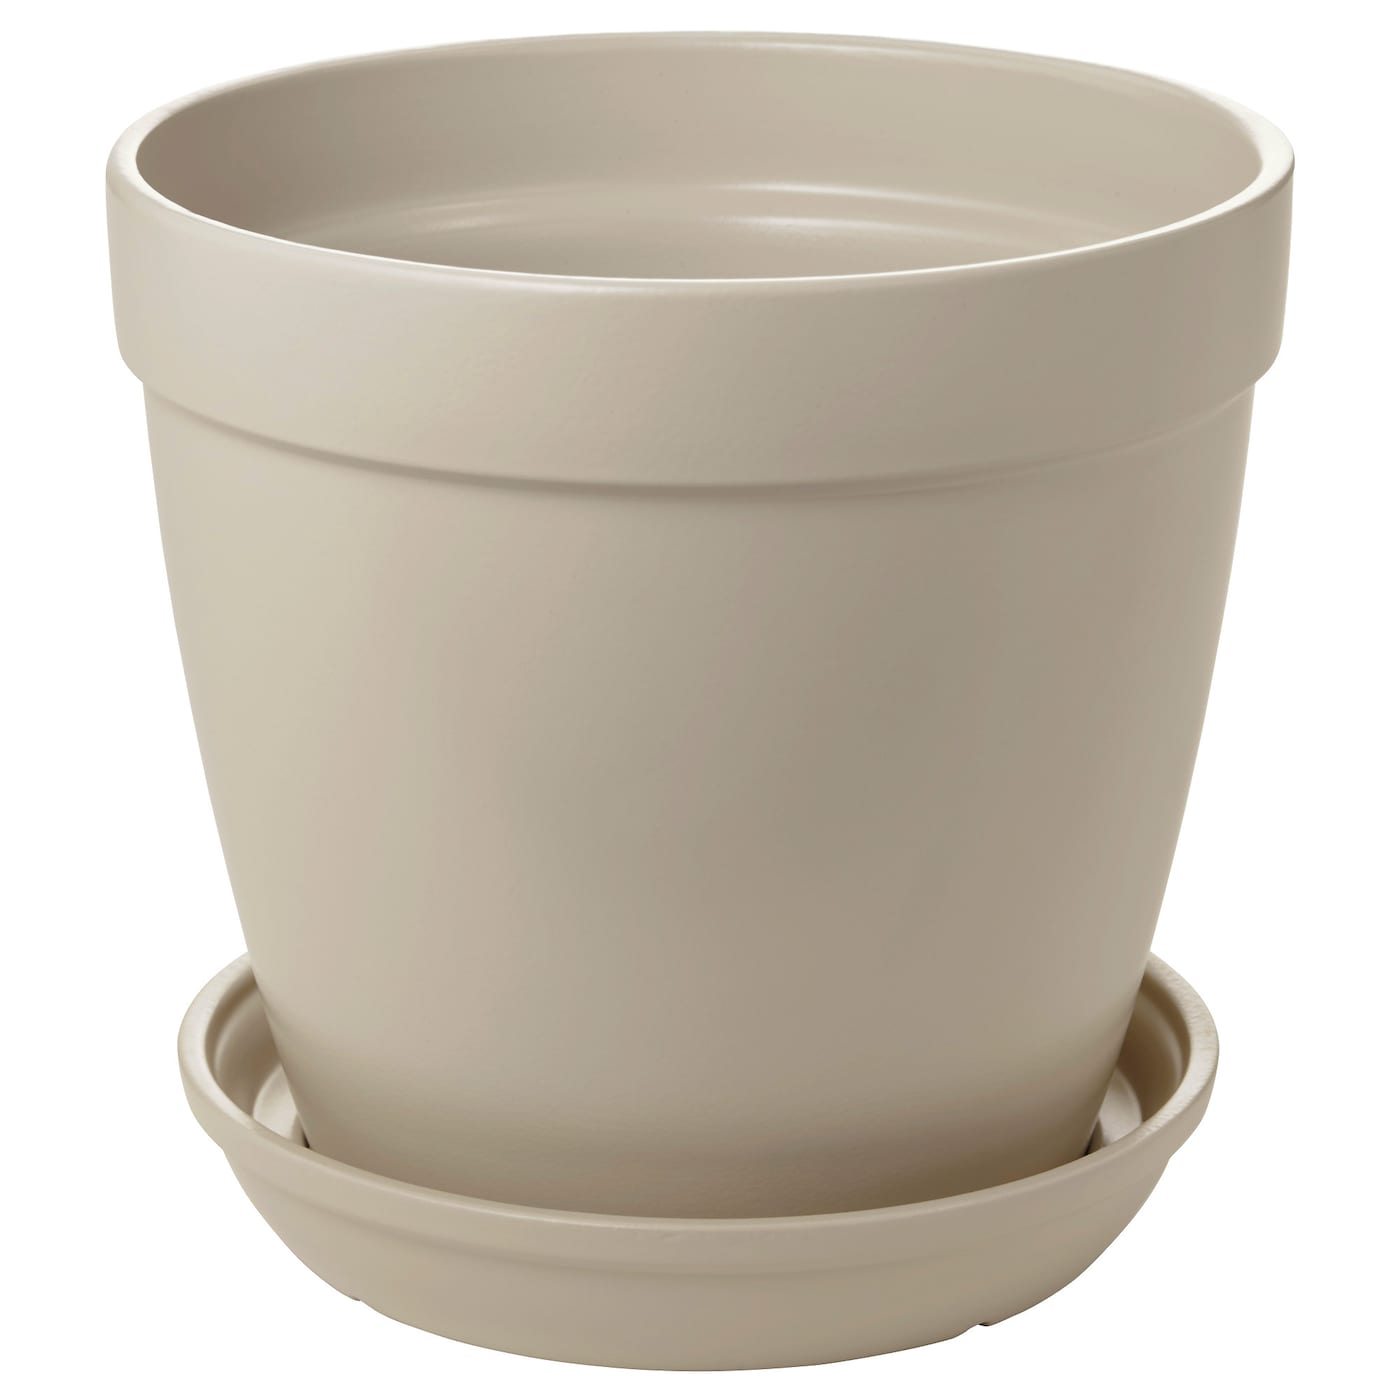 IKEA HJORTRON plant pot with saucer